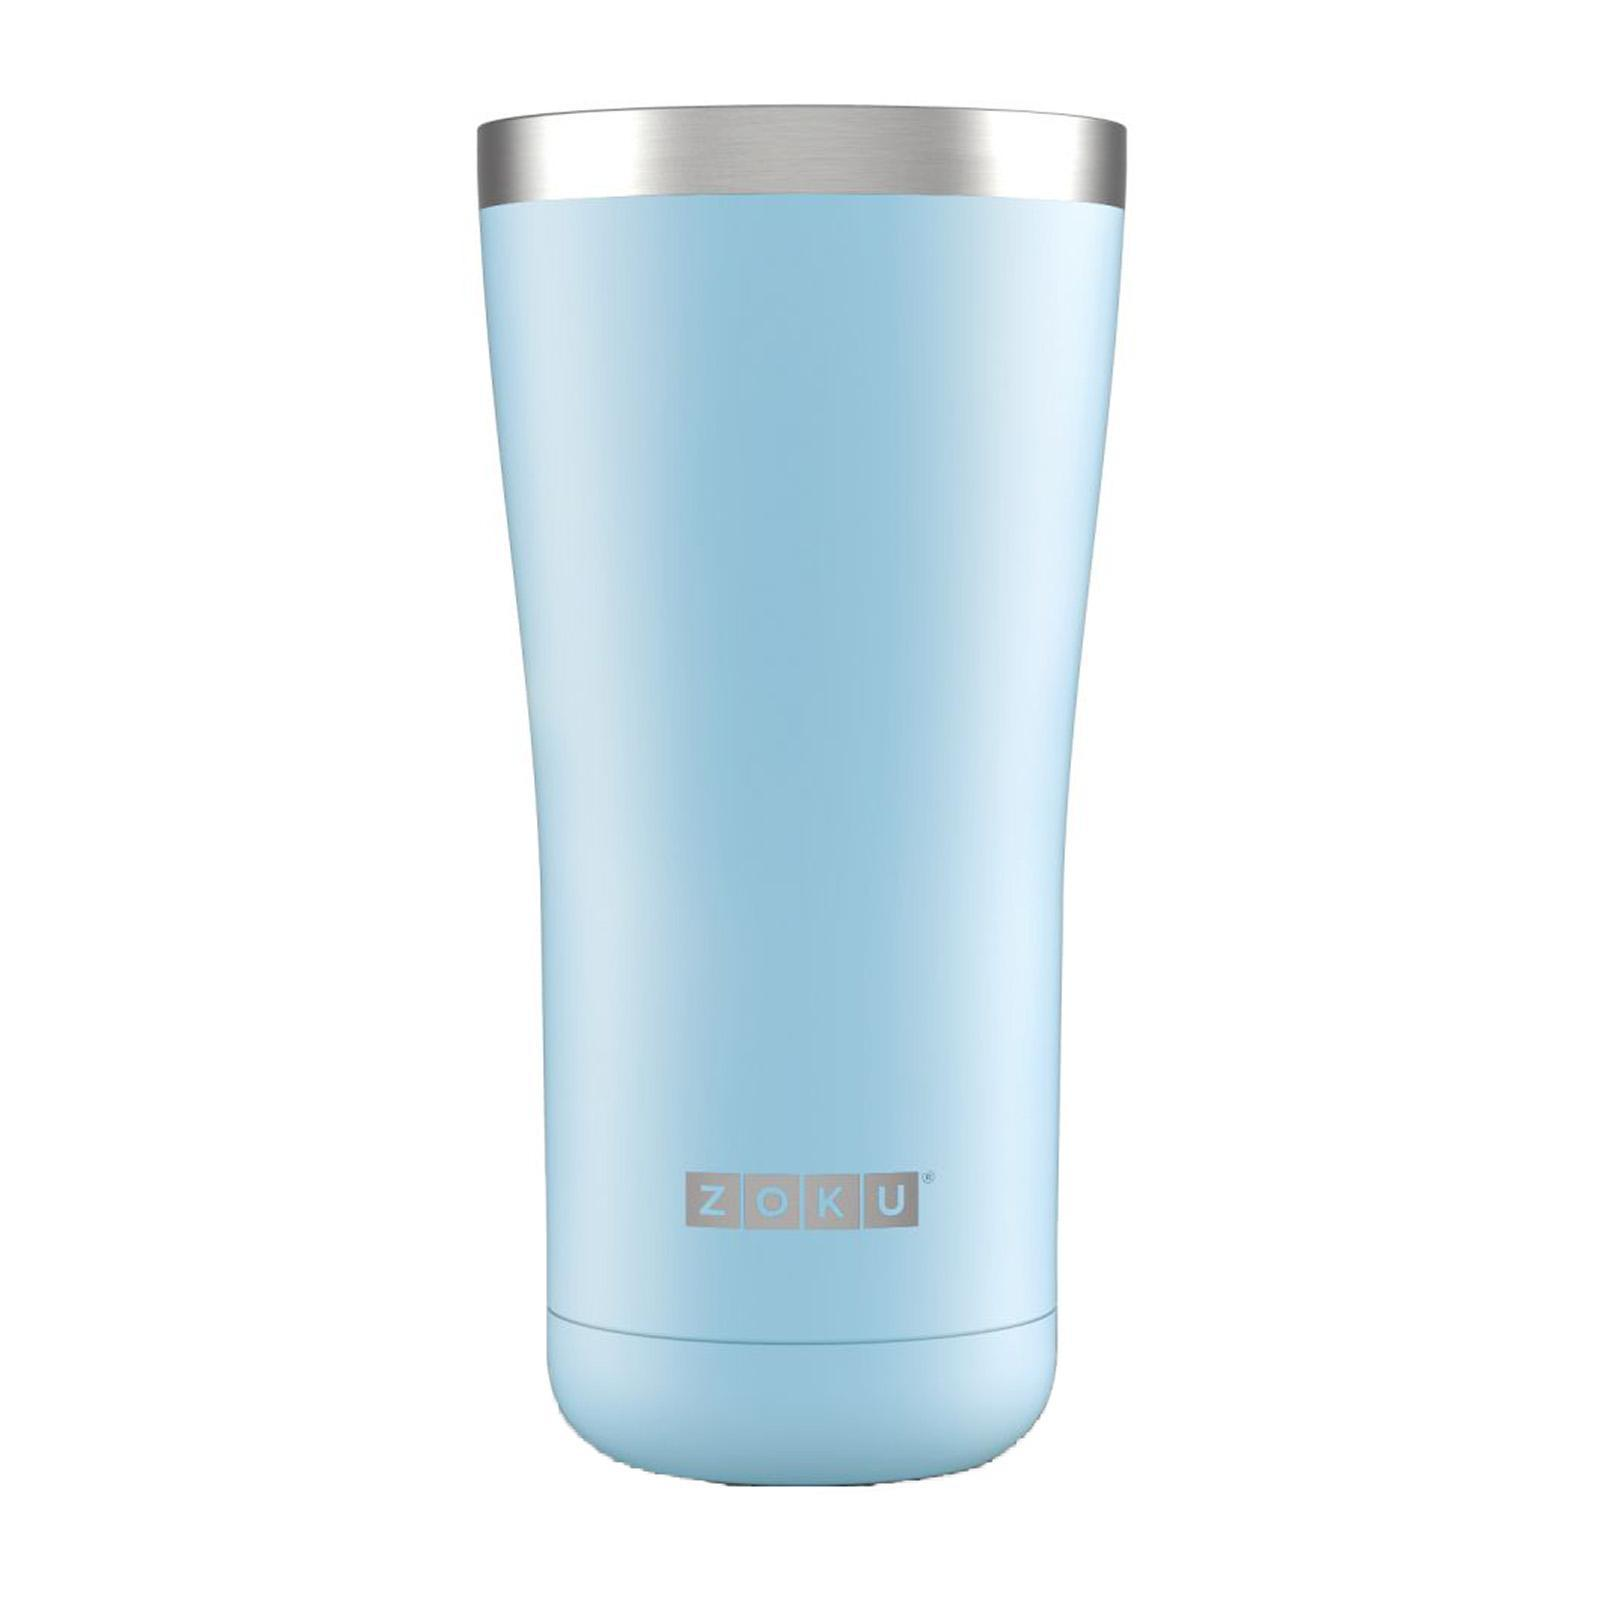 90d9a84f3d2 Zoku 3 In 1 Stainless Steel Tumbler 590Ml (Teal)